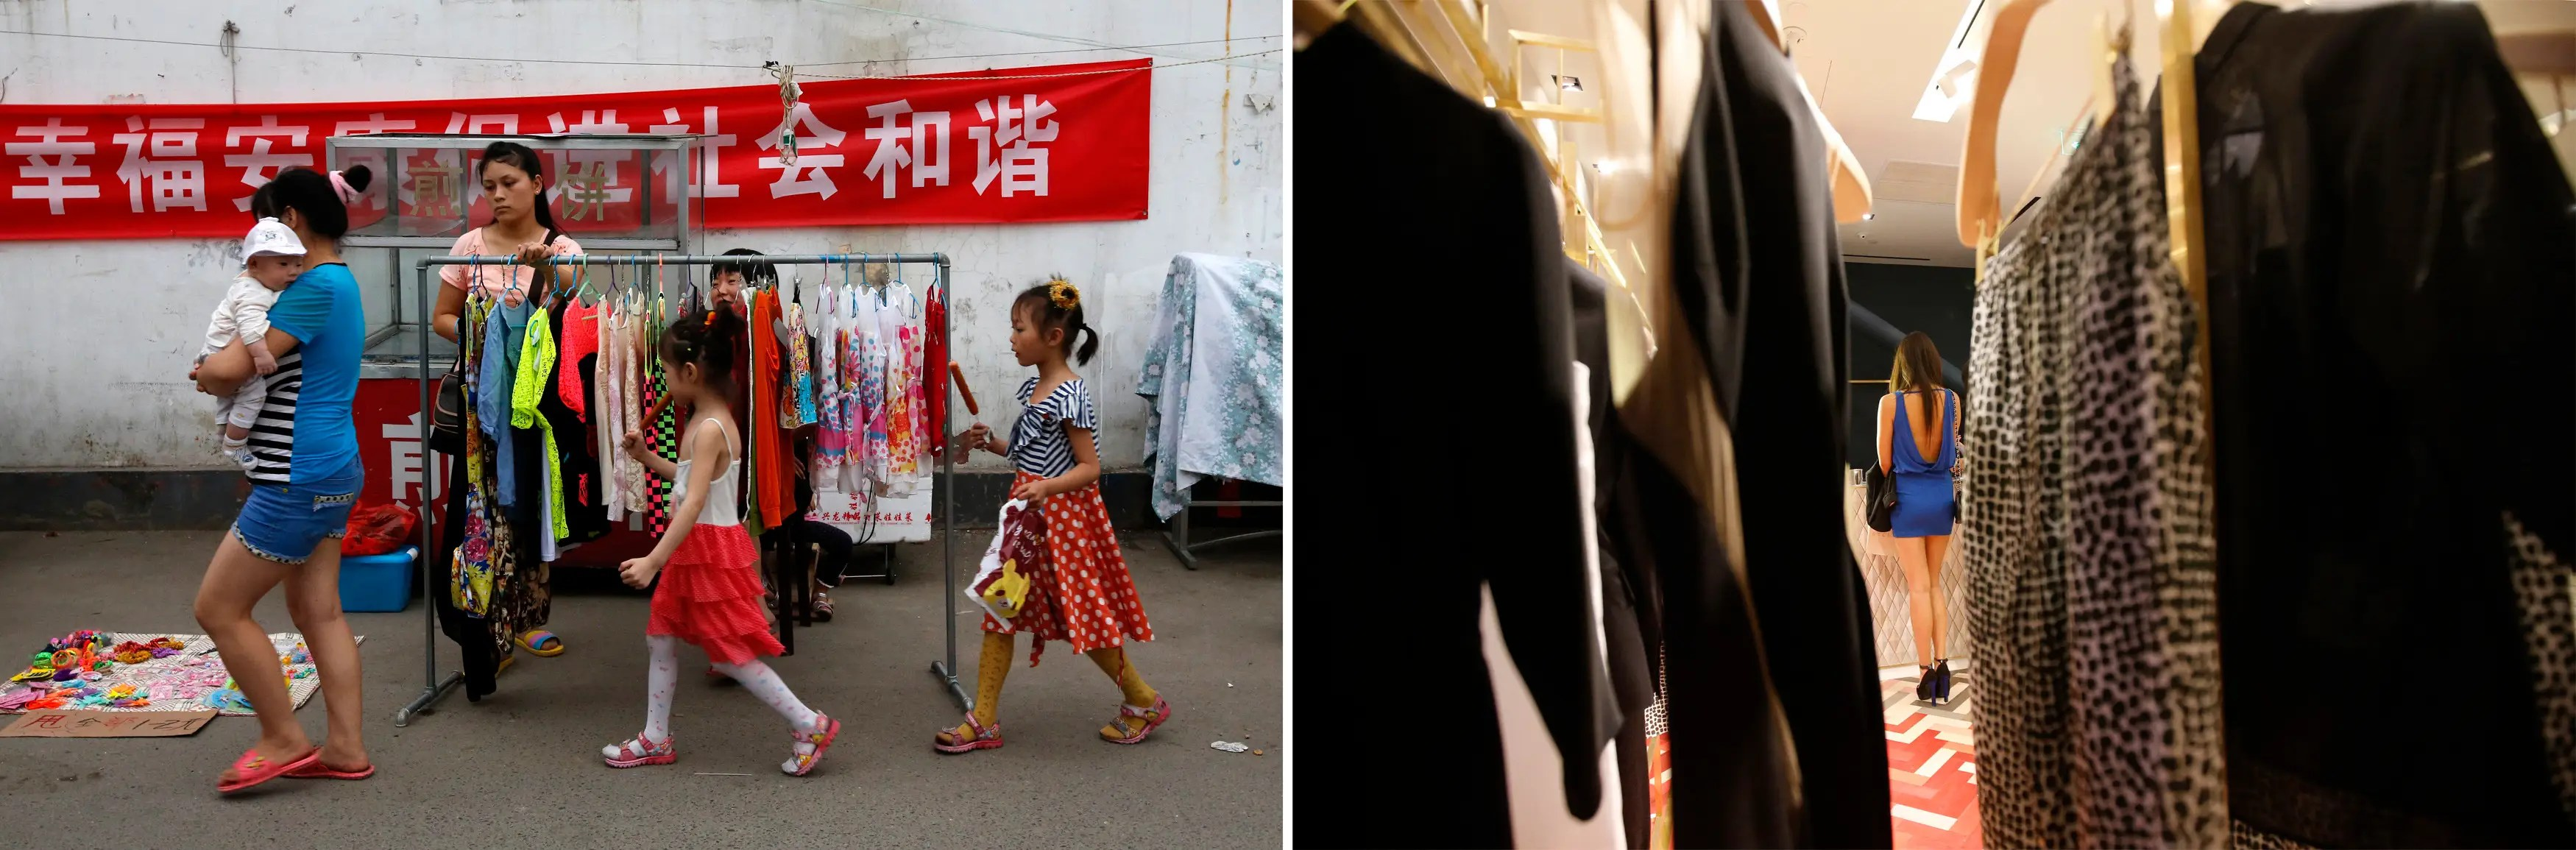 """""""(L) A family walks past a street vendor selling women's clothes in a market for migrant workers in Beijing and (R) a woman paying her bill at a foreign luxury brand's boutique in Beijing."""""""